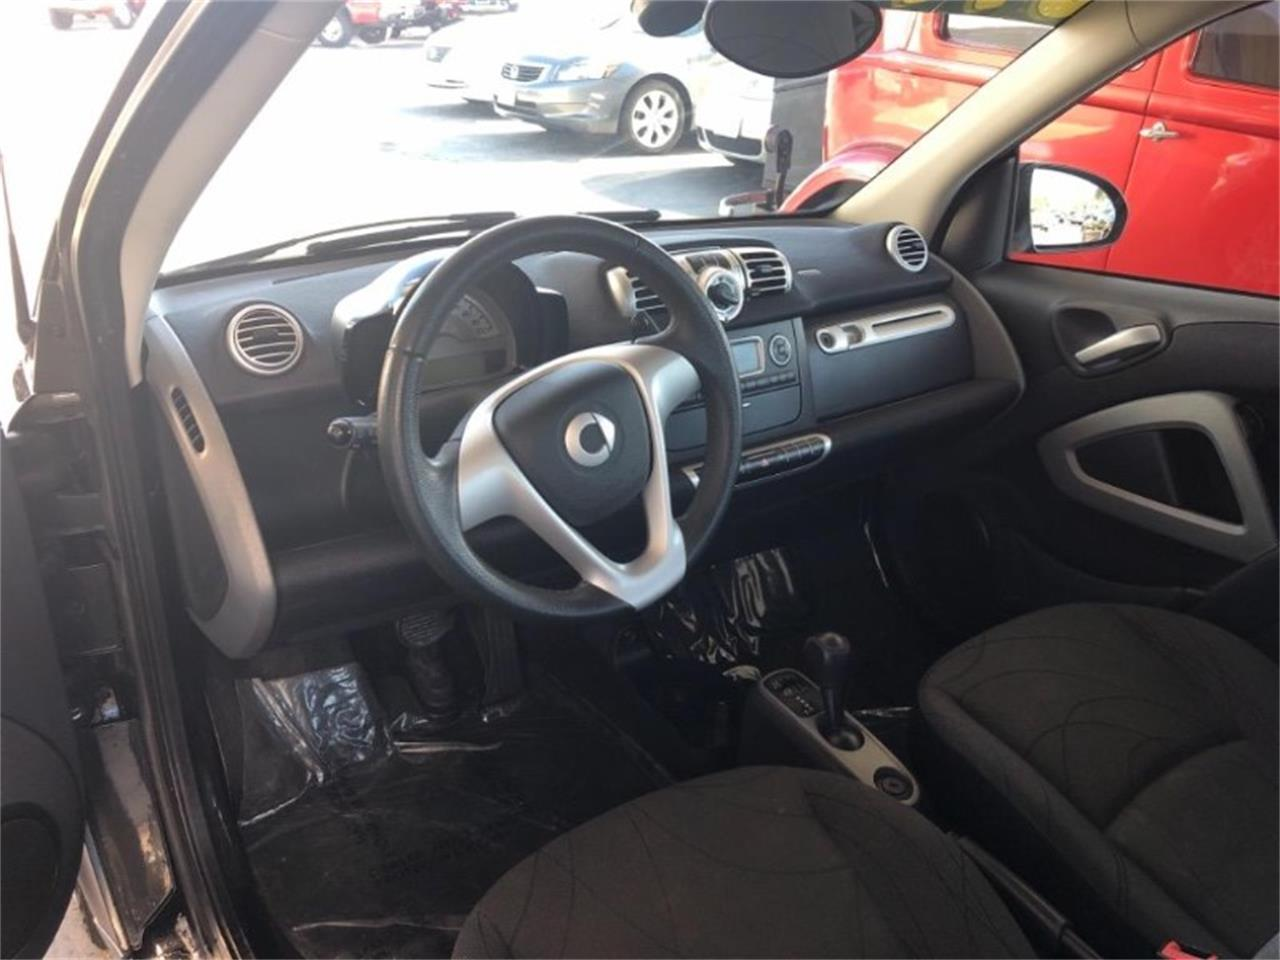 2012 Smart Fortwo for sale in Tavares, FL – photo 11